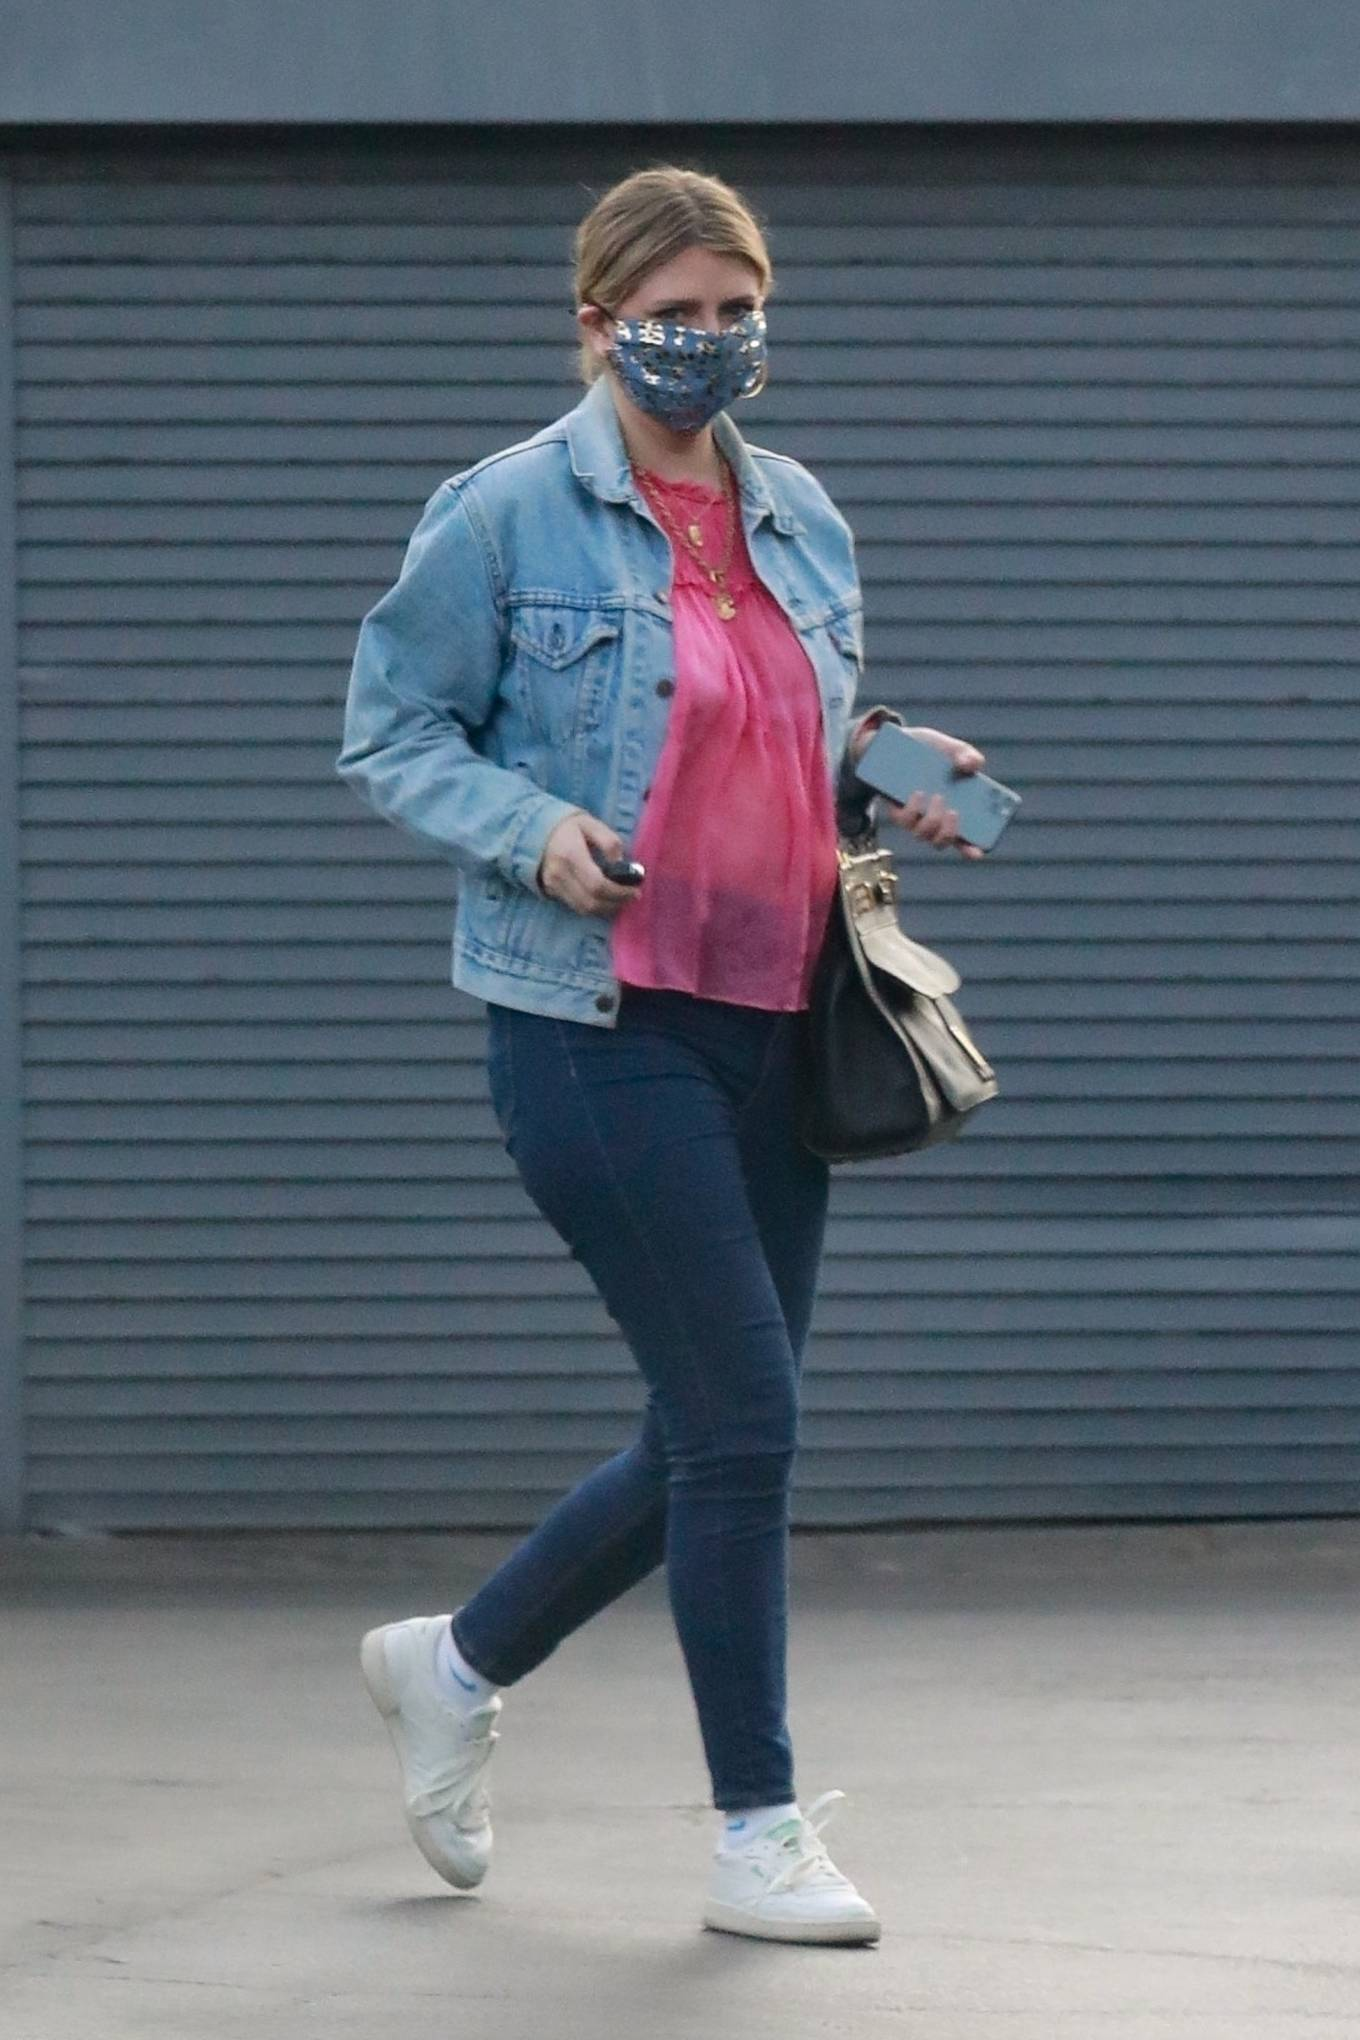 Mischa Barton 2020 : Mischa Barton – And her boyfriend Gian Marco Flamini at Tomato Pie Pizza Joint in Los Angeles -04